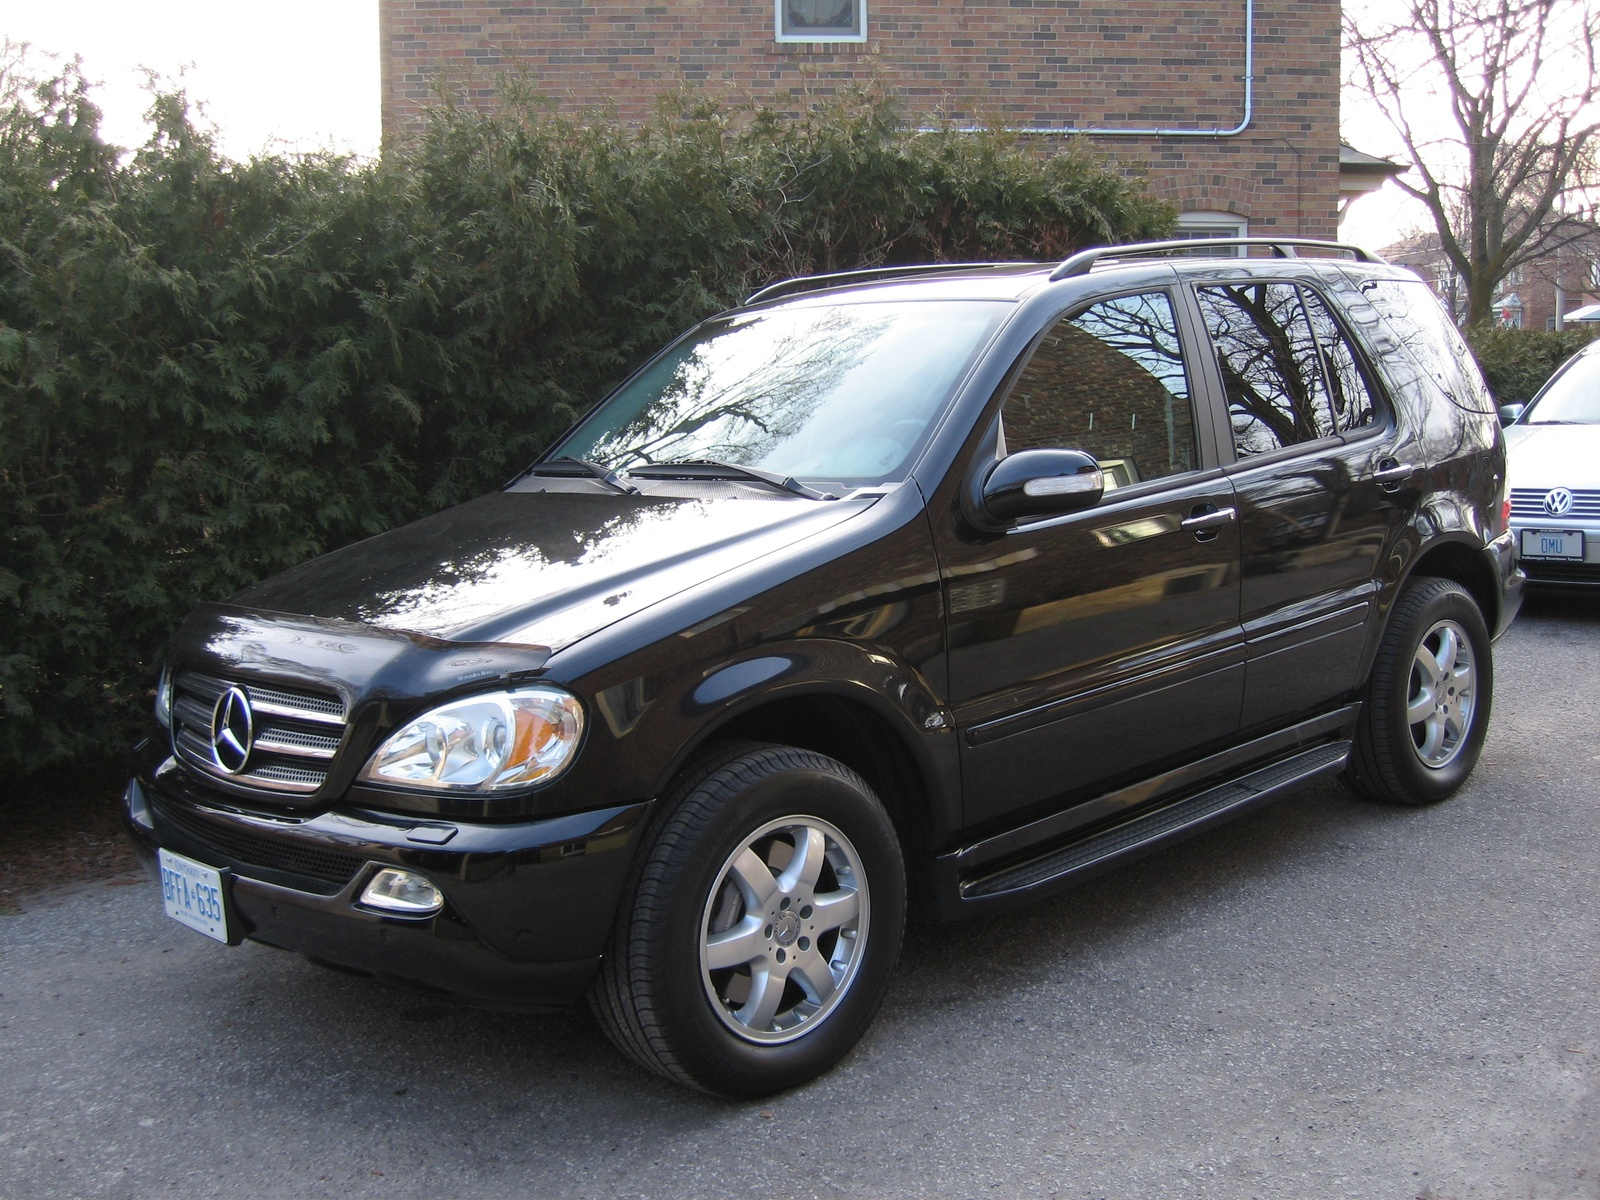 2004 mercedes benz m class image 4 for Pictures of mercedes benz suv